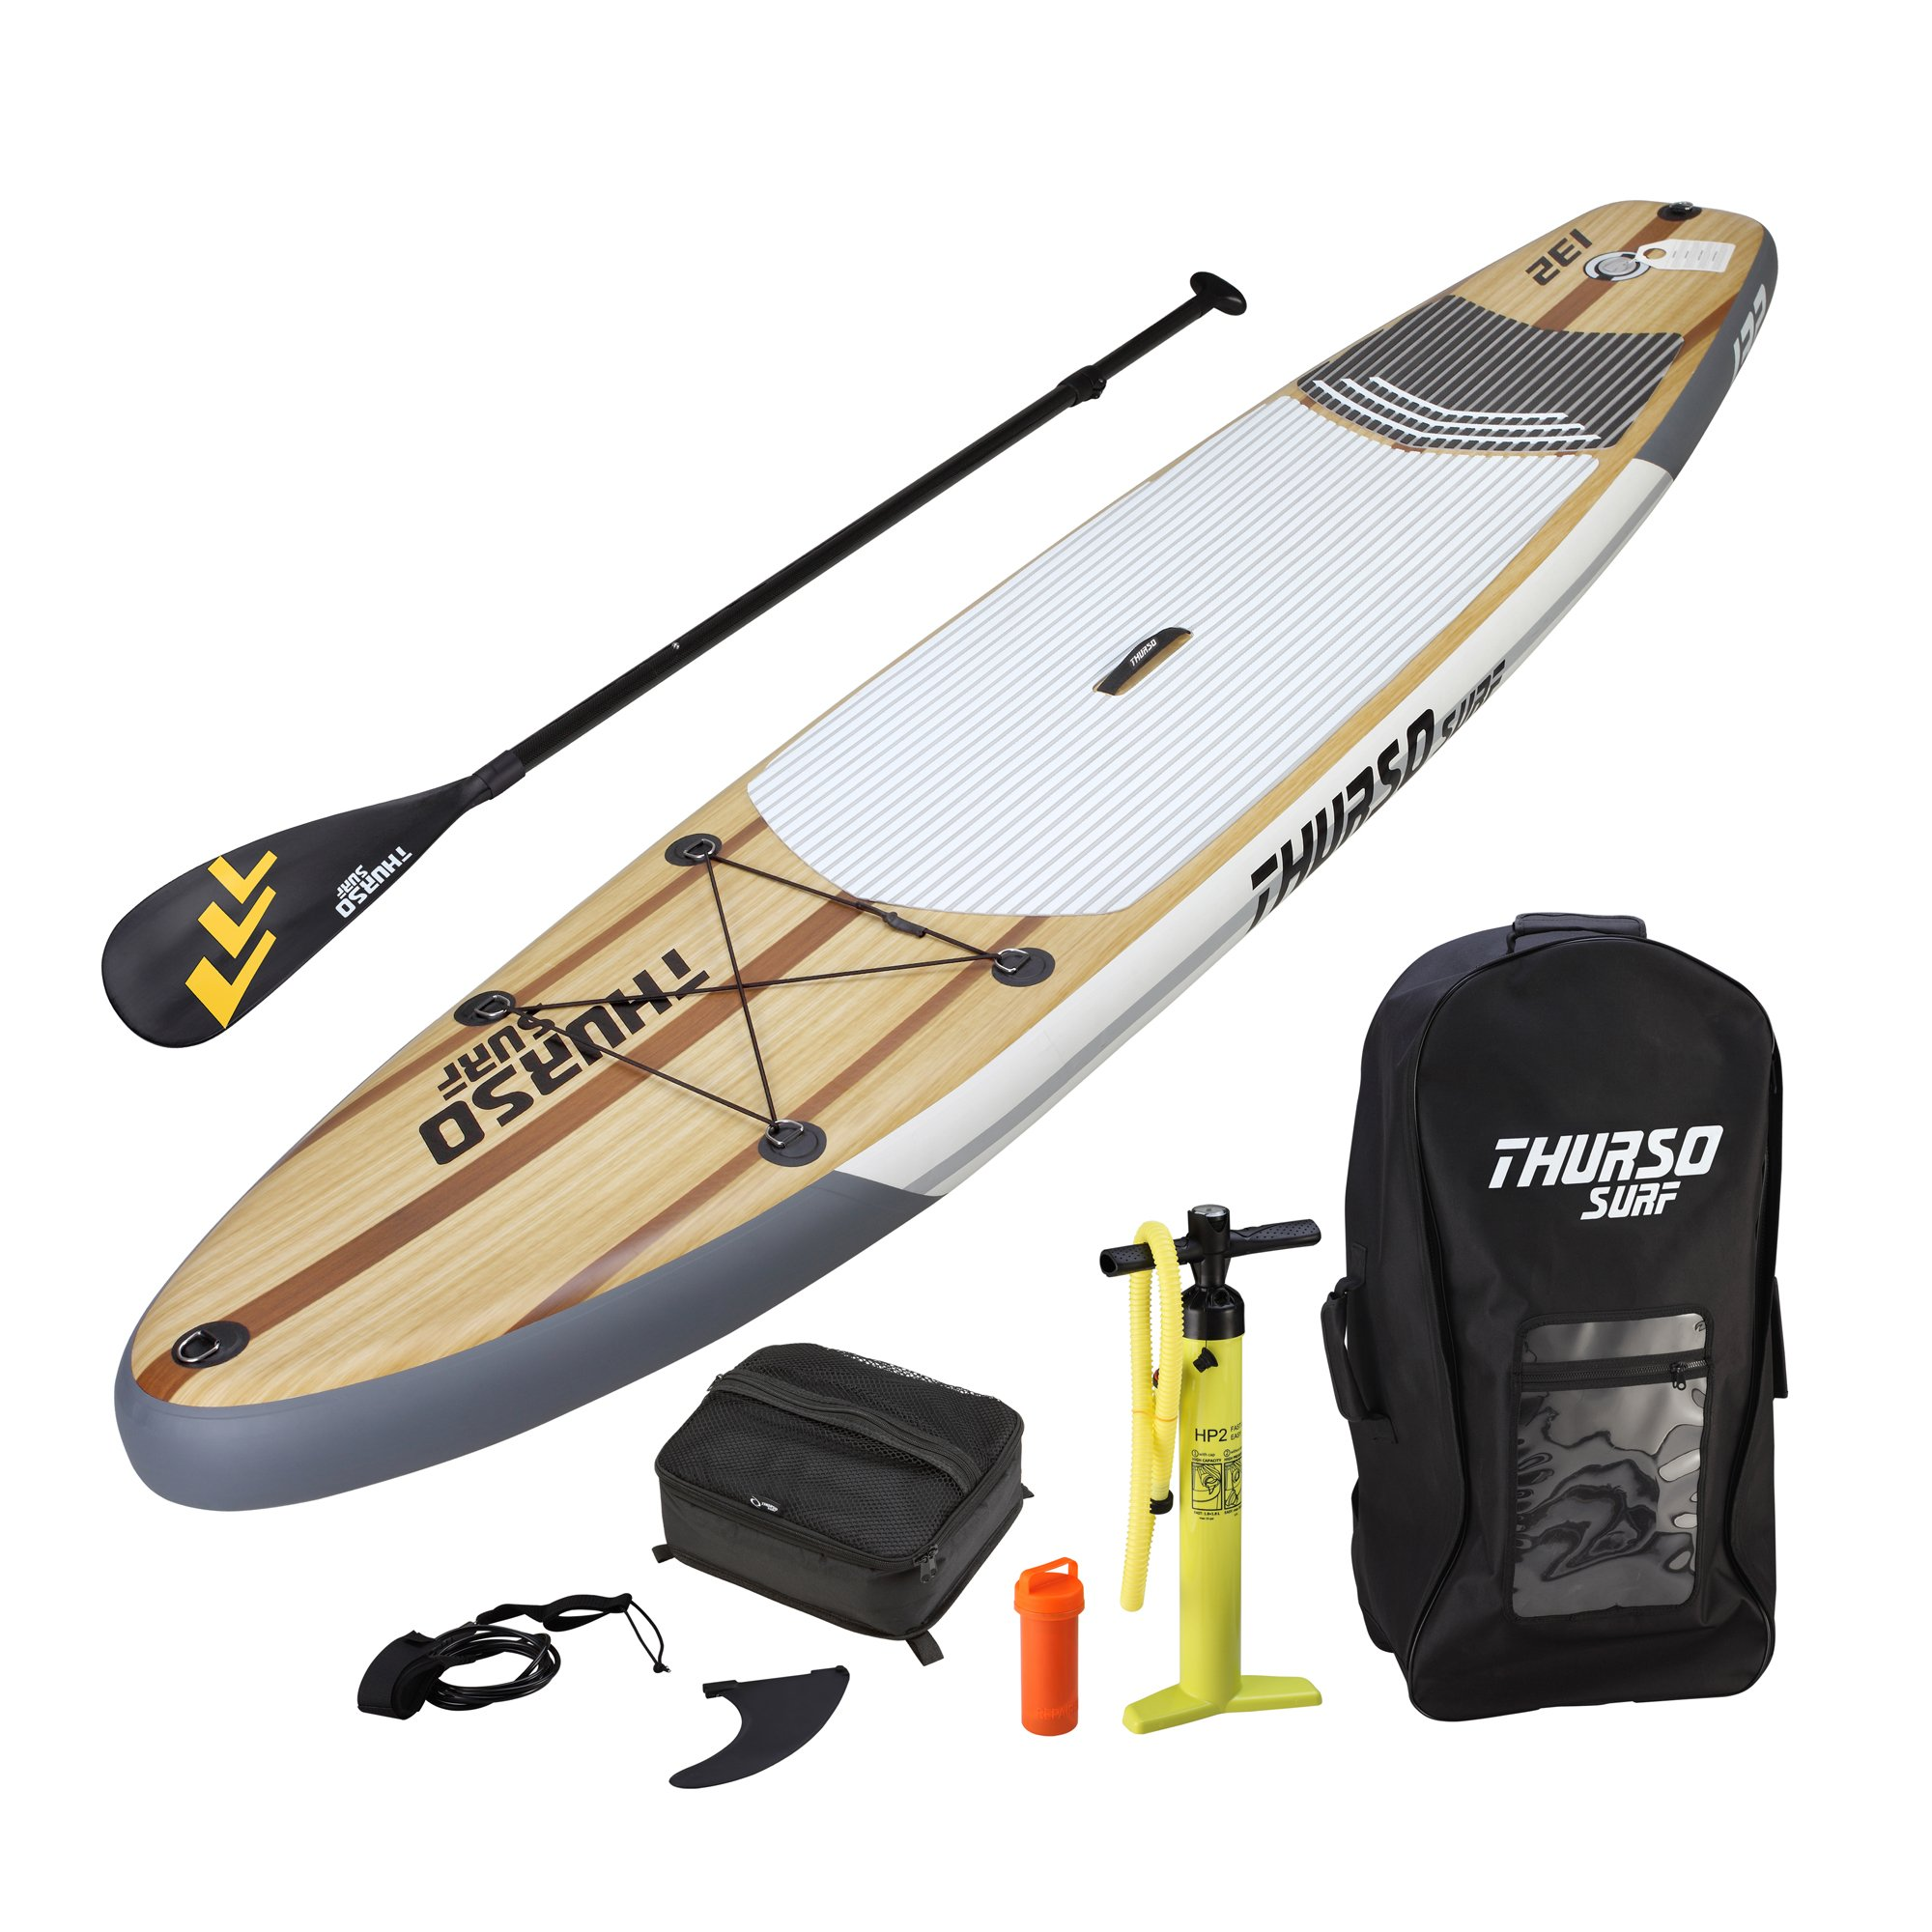 THURSO SURF Waterwalker All-Around Inflatable Stand Up Paddle Board SUP 10'6/11' Long 6'' Thick TWO LAYER Deluxe Package Includes CARBON Shaft Paddle/2+1 Quick Lock Fins/Deck Bag/Leash/Pump/Backpack